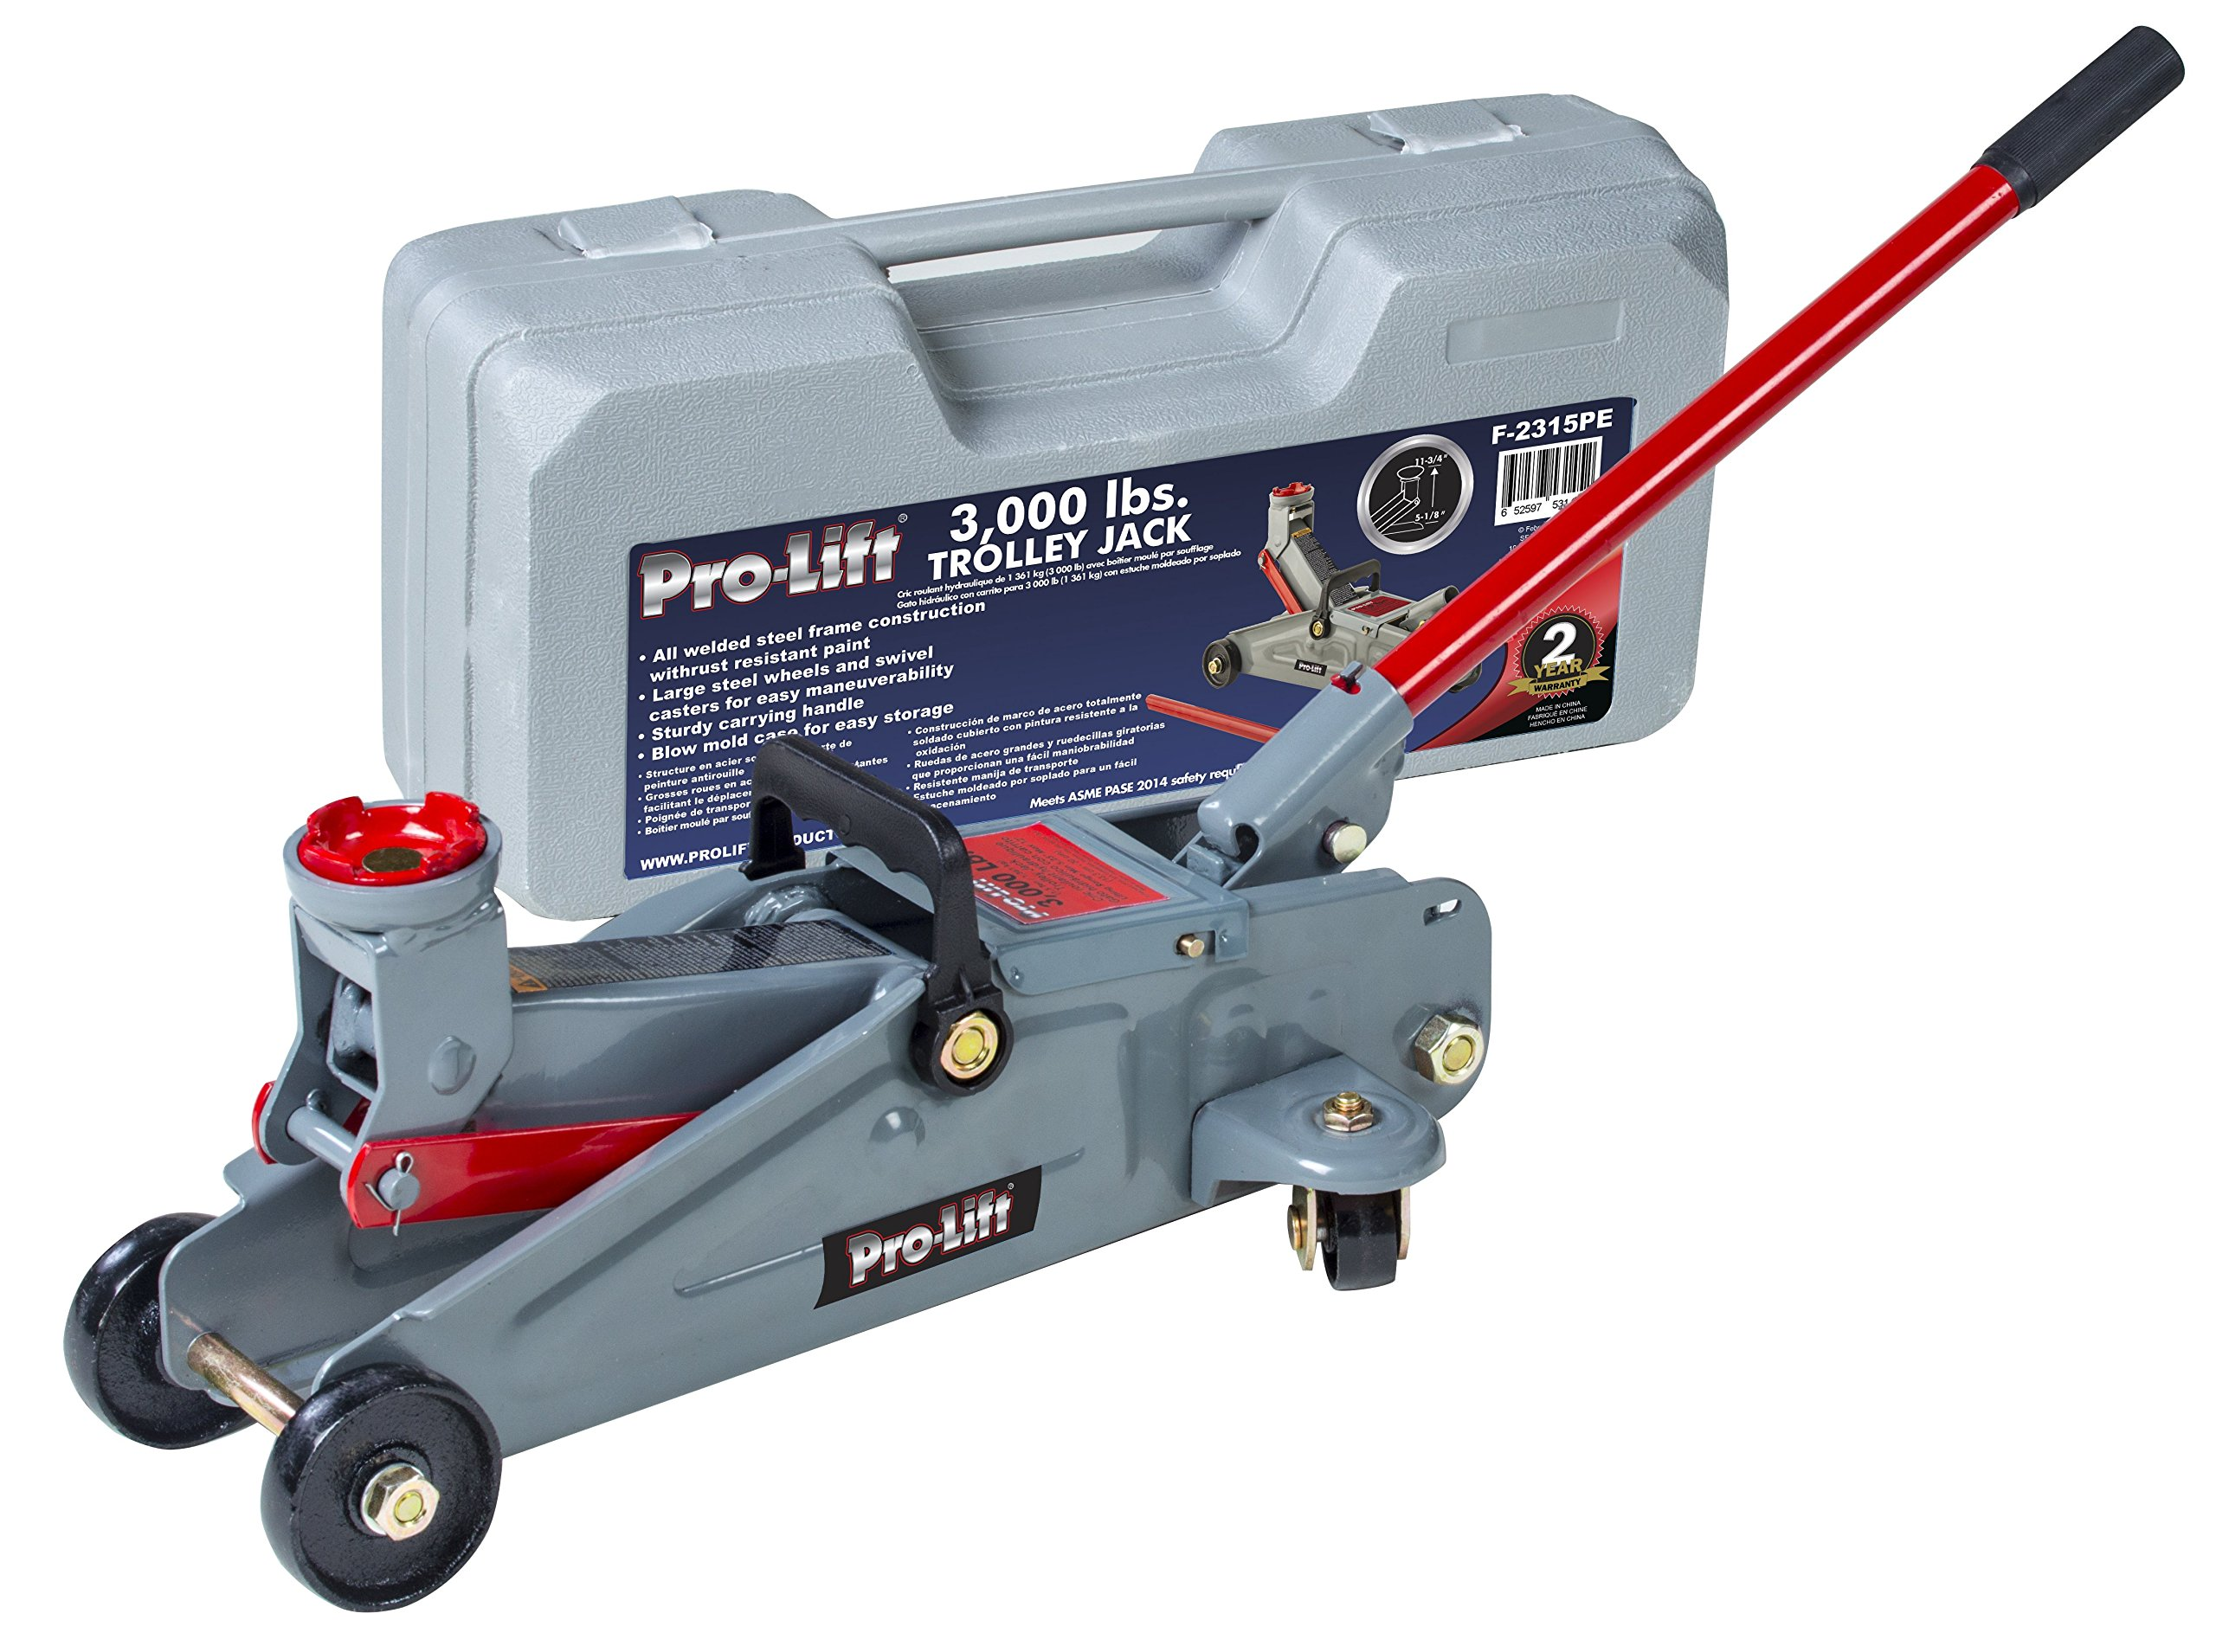 Pro-LifT F-2315PE Grey Hydraulic Trolley Jack Car Lift with Blow Molded Case-3000 LBS Capacity by Pro-LifT